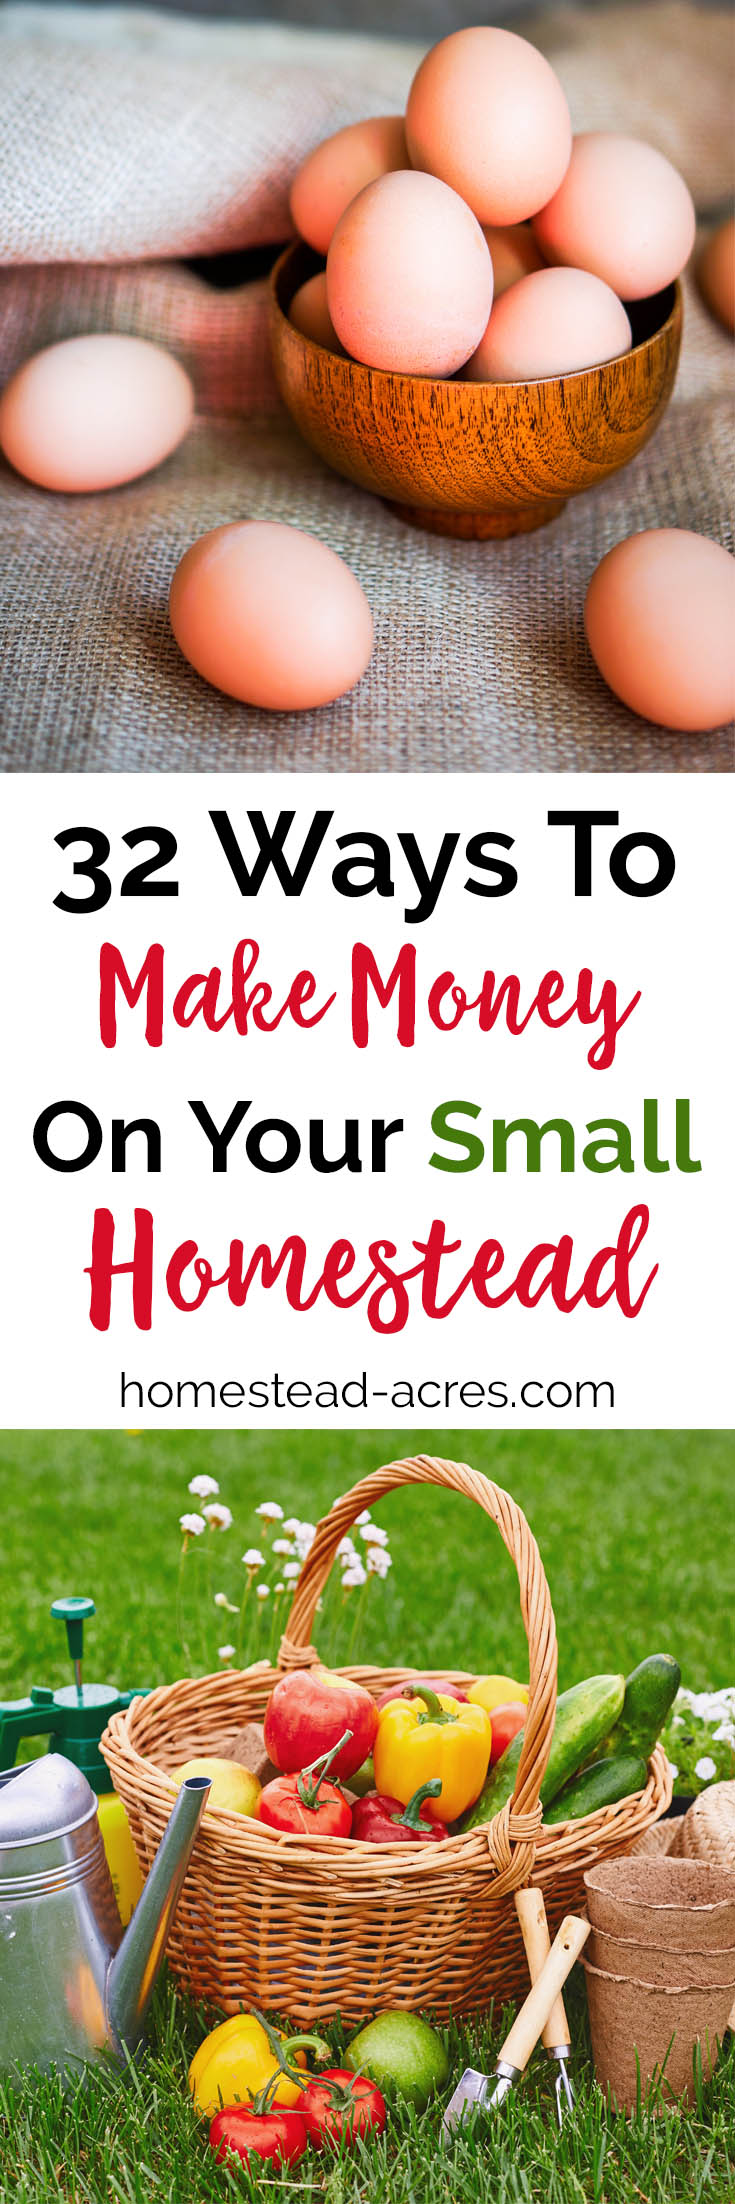 32 real ways you can make money homesteading. A great source to brainstorm ideas for working at home on your small farm. #homestead #homesteading #makingmoney